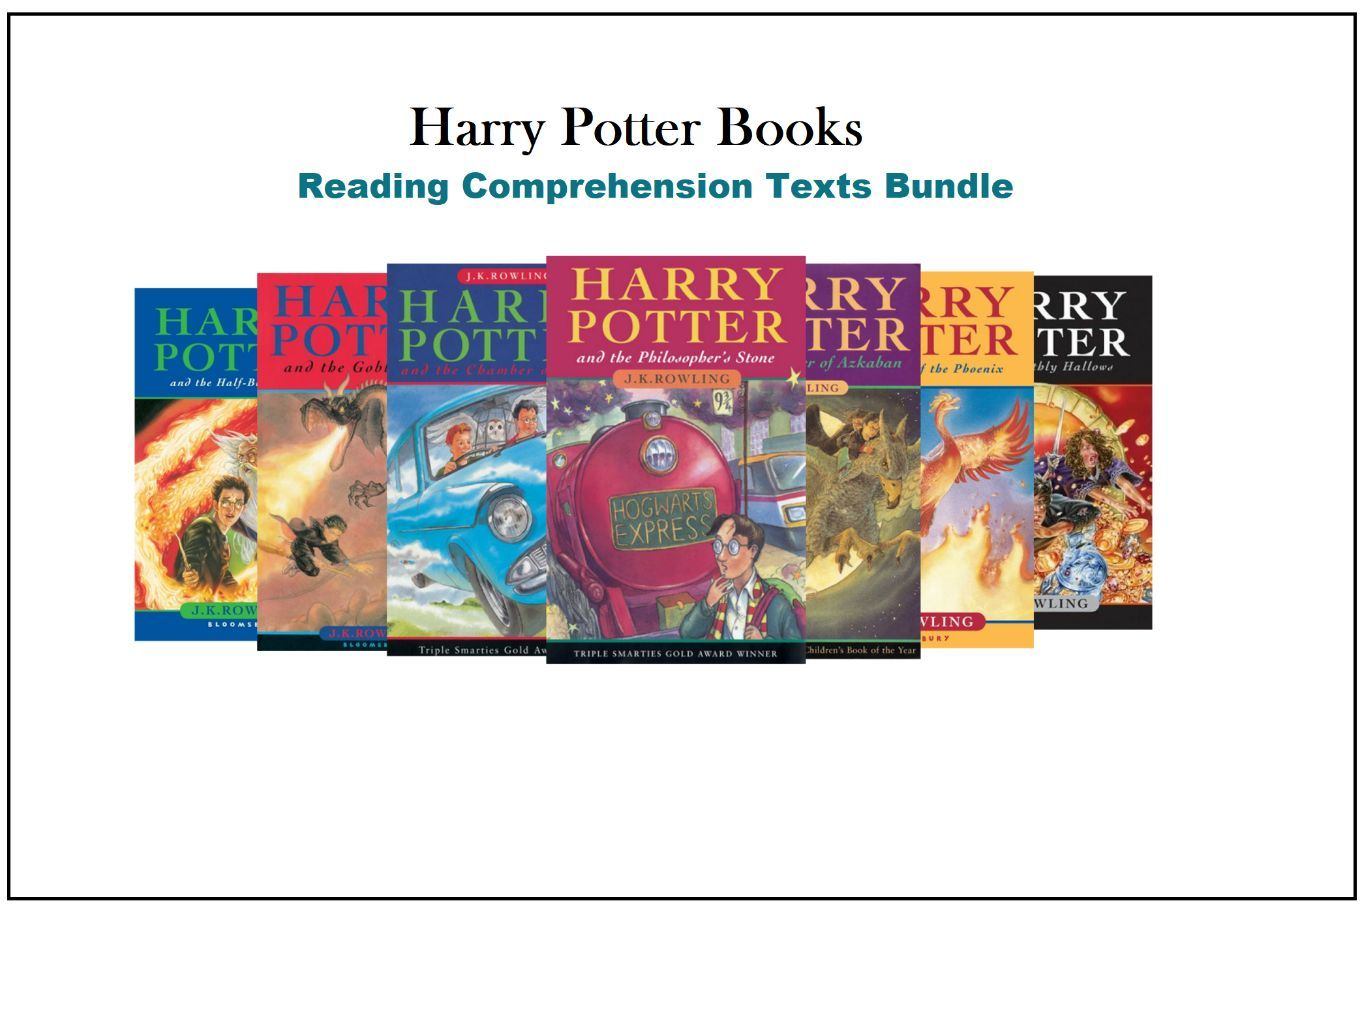 Harry Potter Reading Comprehension Texts Bundle / Novel Summaries (SAVE 65%)